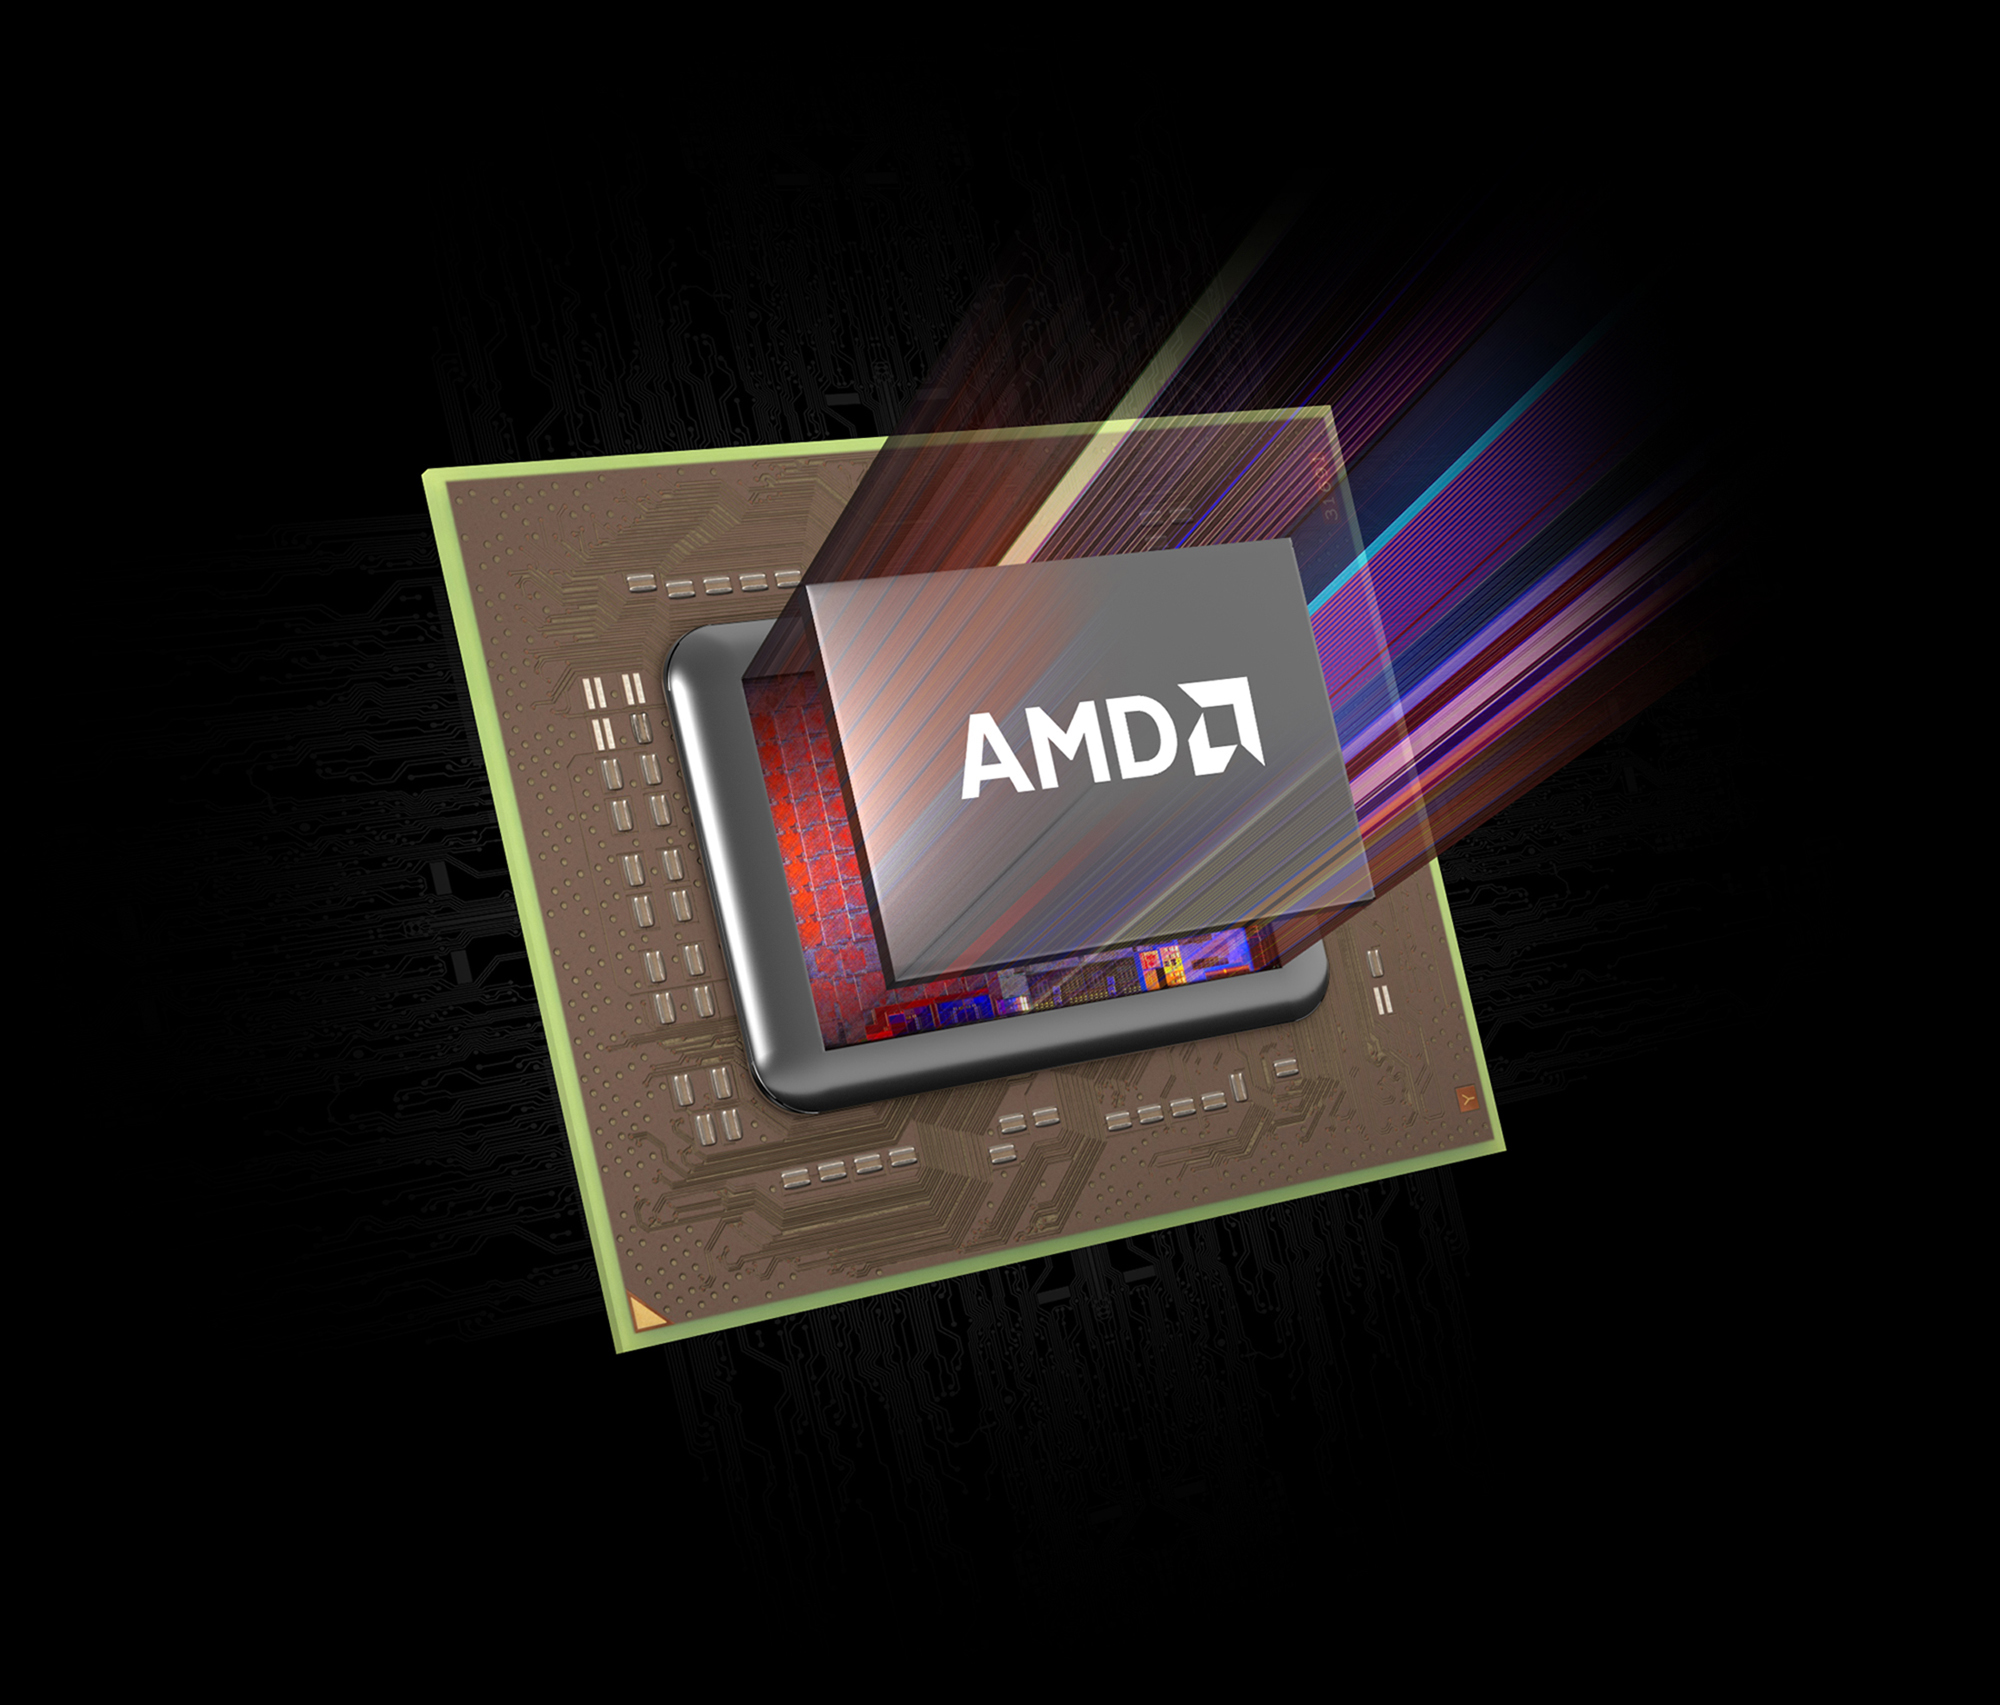 AMD0188 Carrizo chip with AMD logo cover + angled